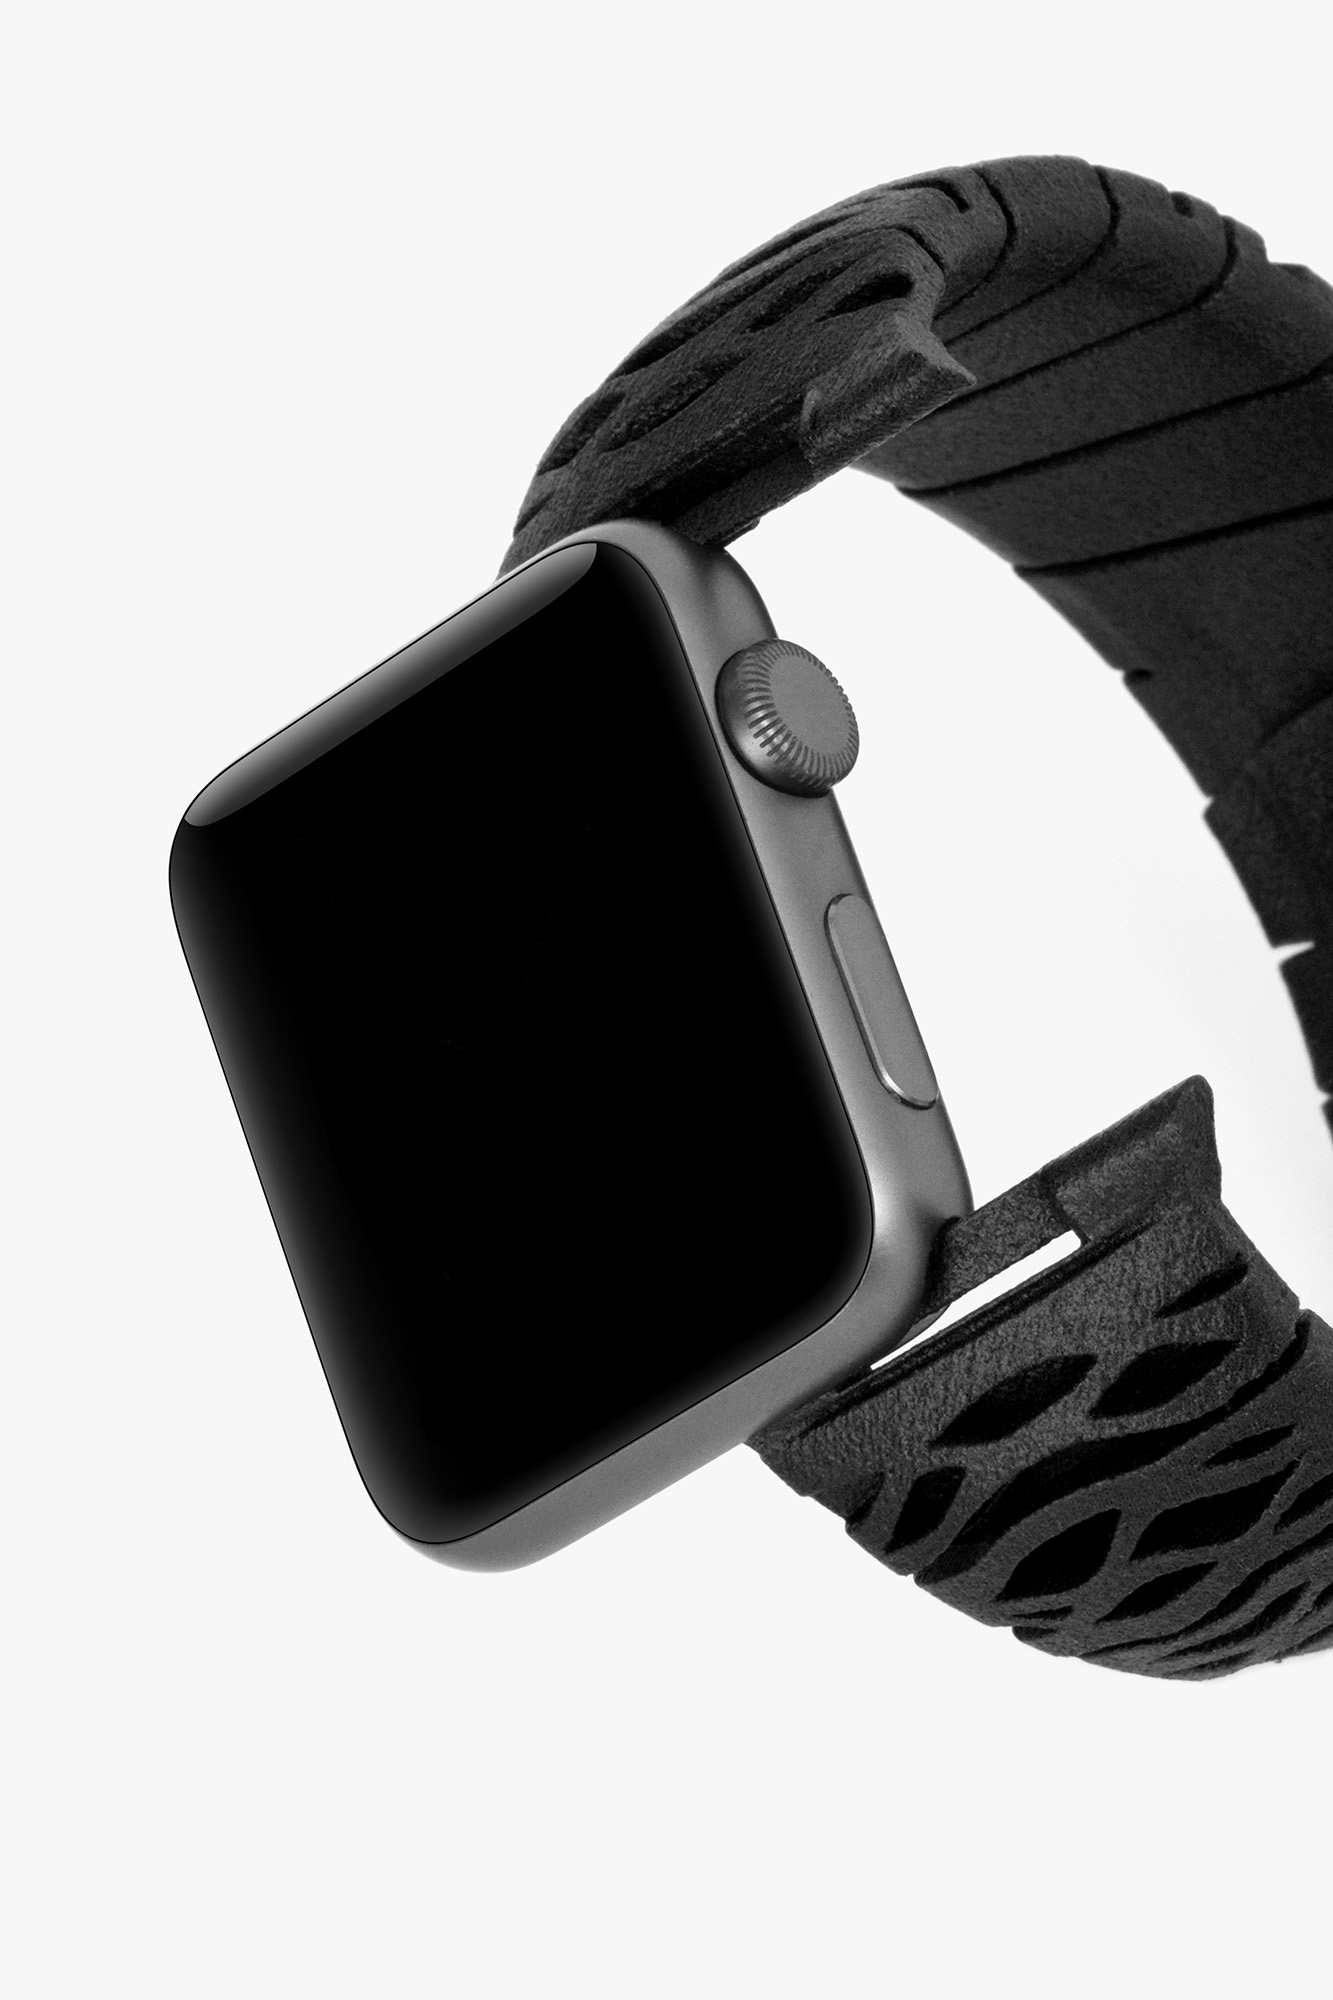 Apple Watch Band Assembly | Freshfiber Apple Watch Bands, Design by Matthijs Kok for Freshfiber